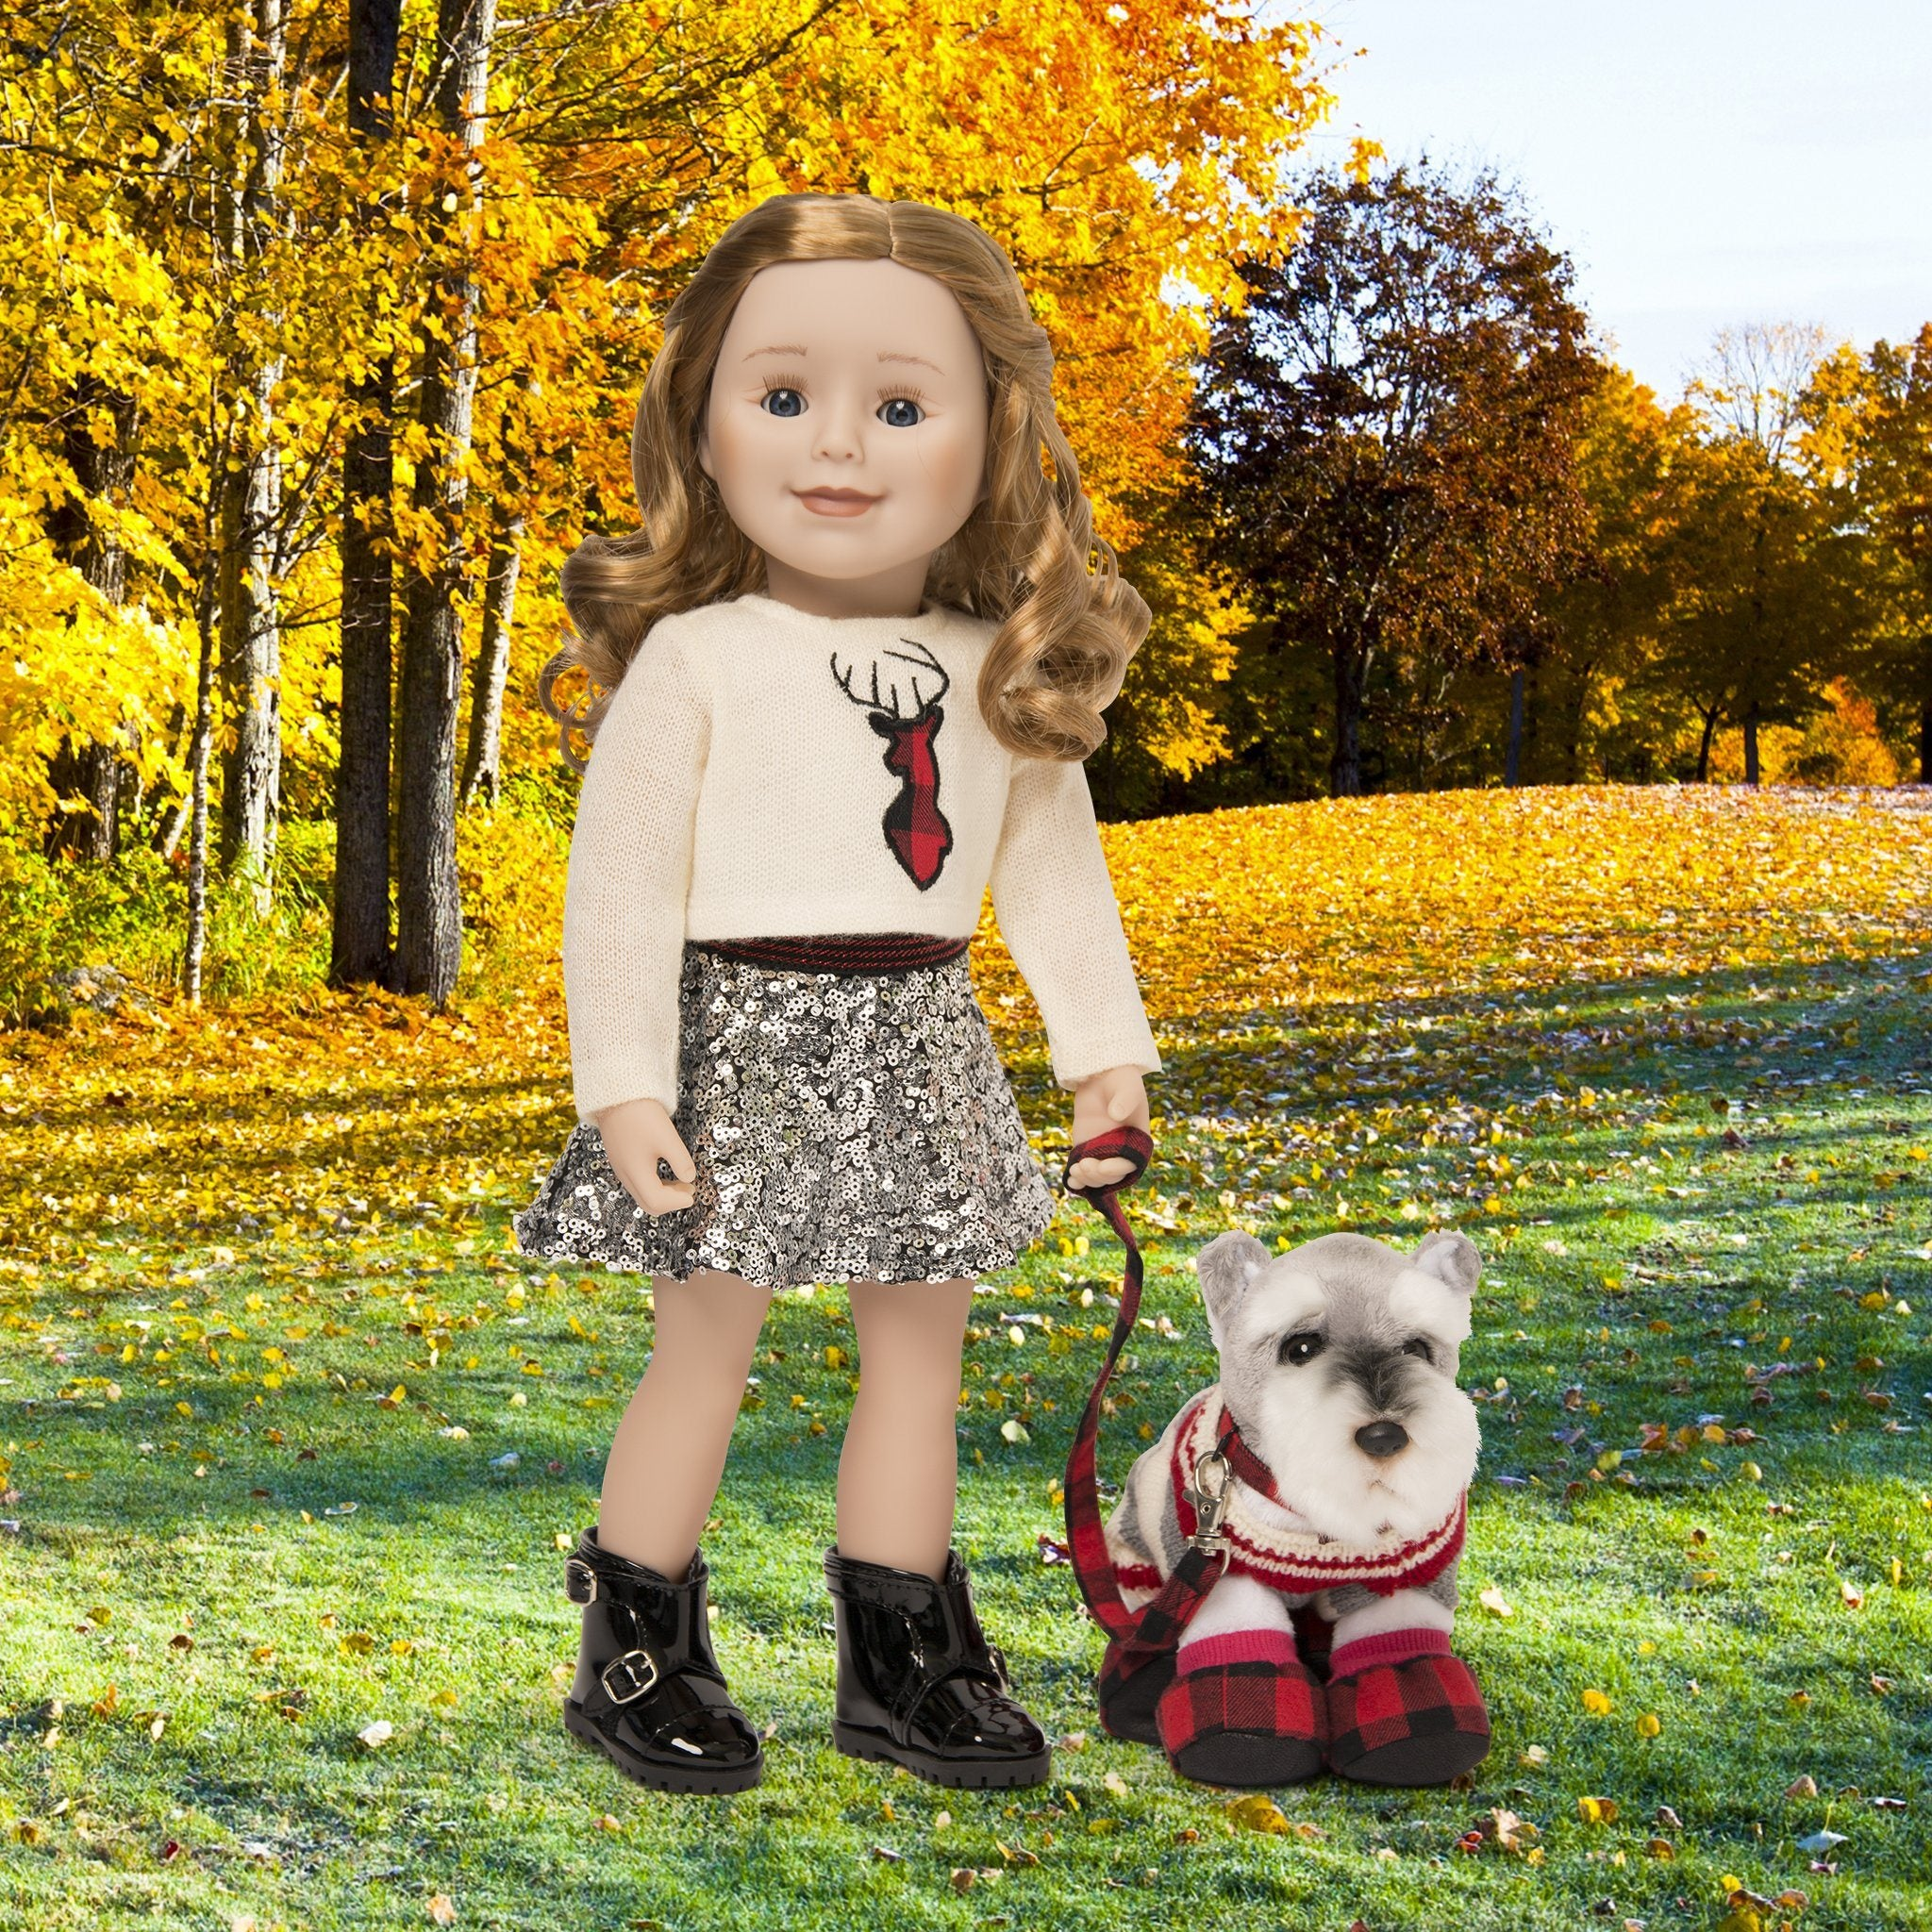 Knit sweater with buffalo plaid deer silhouette, sequin skirt and shiny ankle boots.